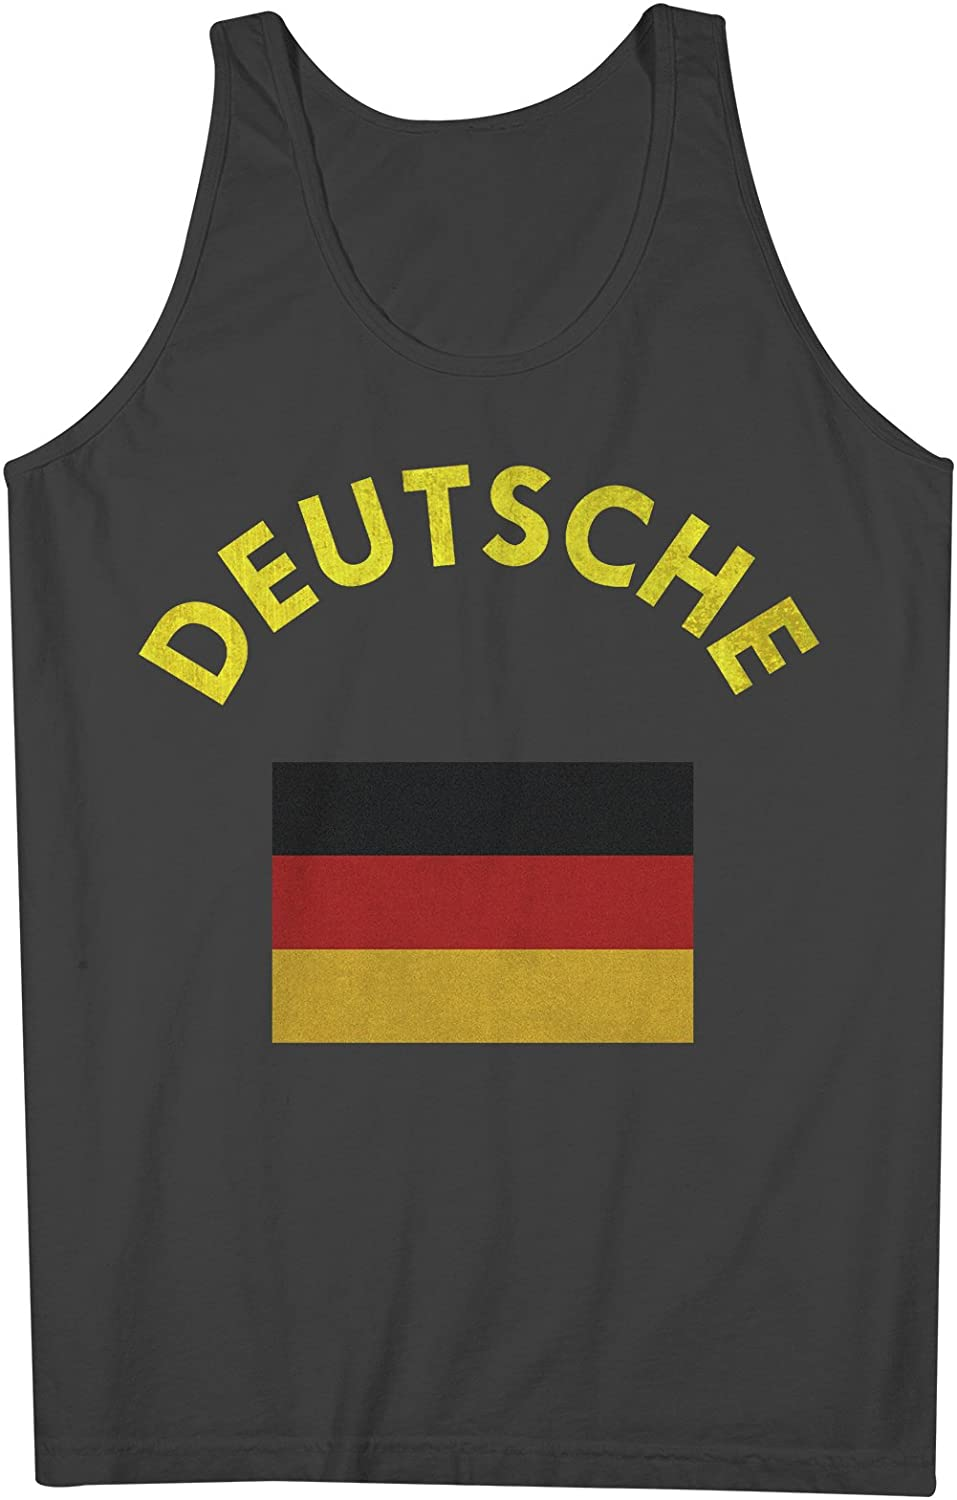 Deutsche Deutschland Germany German Flag 男性用 Tank Top Sleeveless Shirt